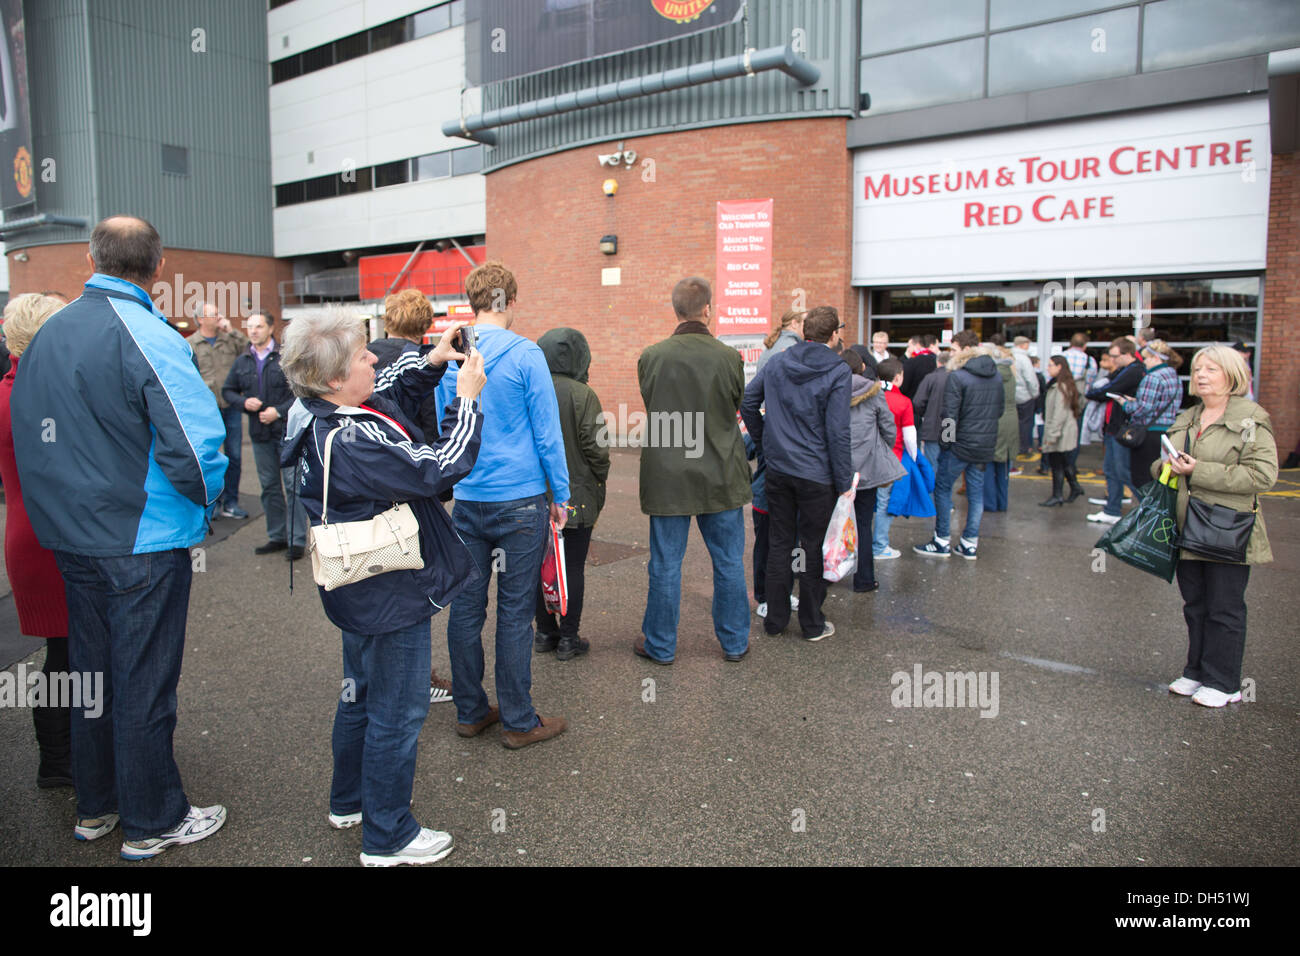 Old Trafford Football Stadium, in the Stretford area of Greater Manchester home of Manchester United Football Club, - Stock Image